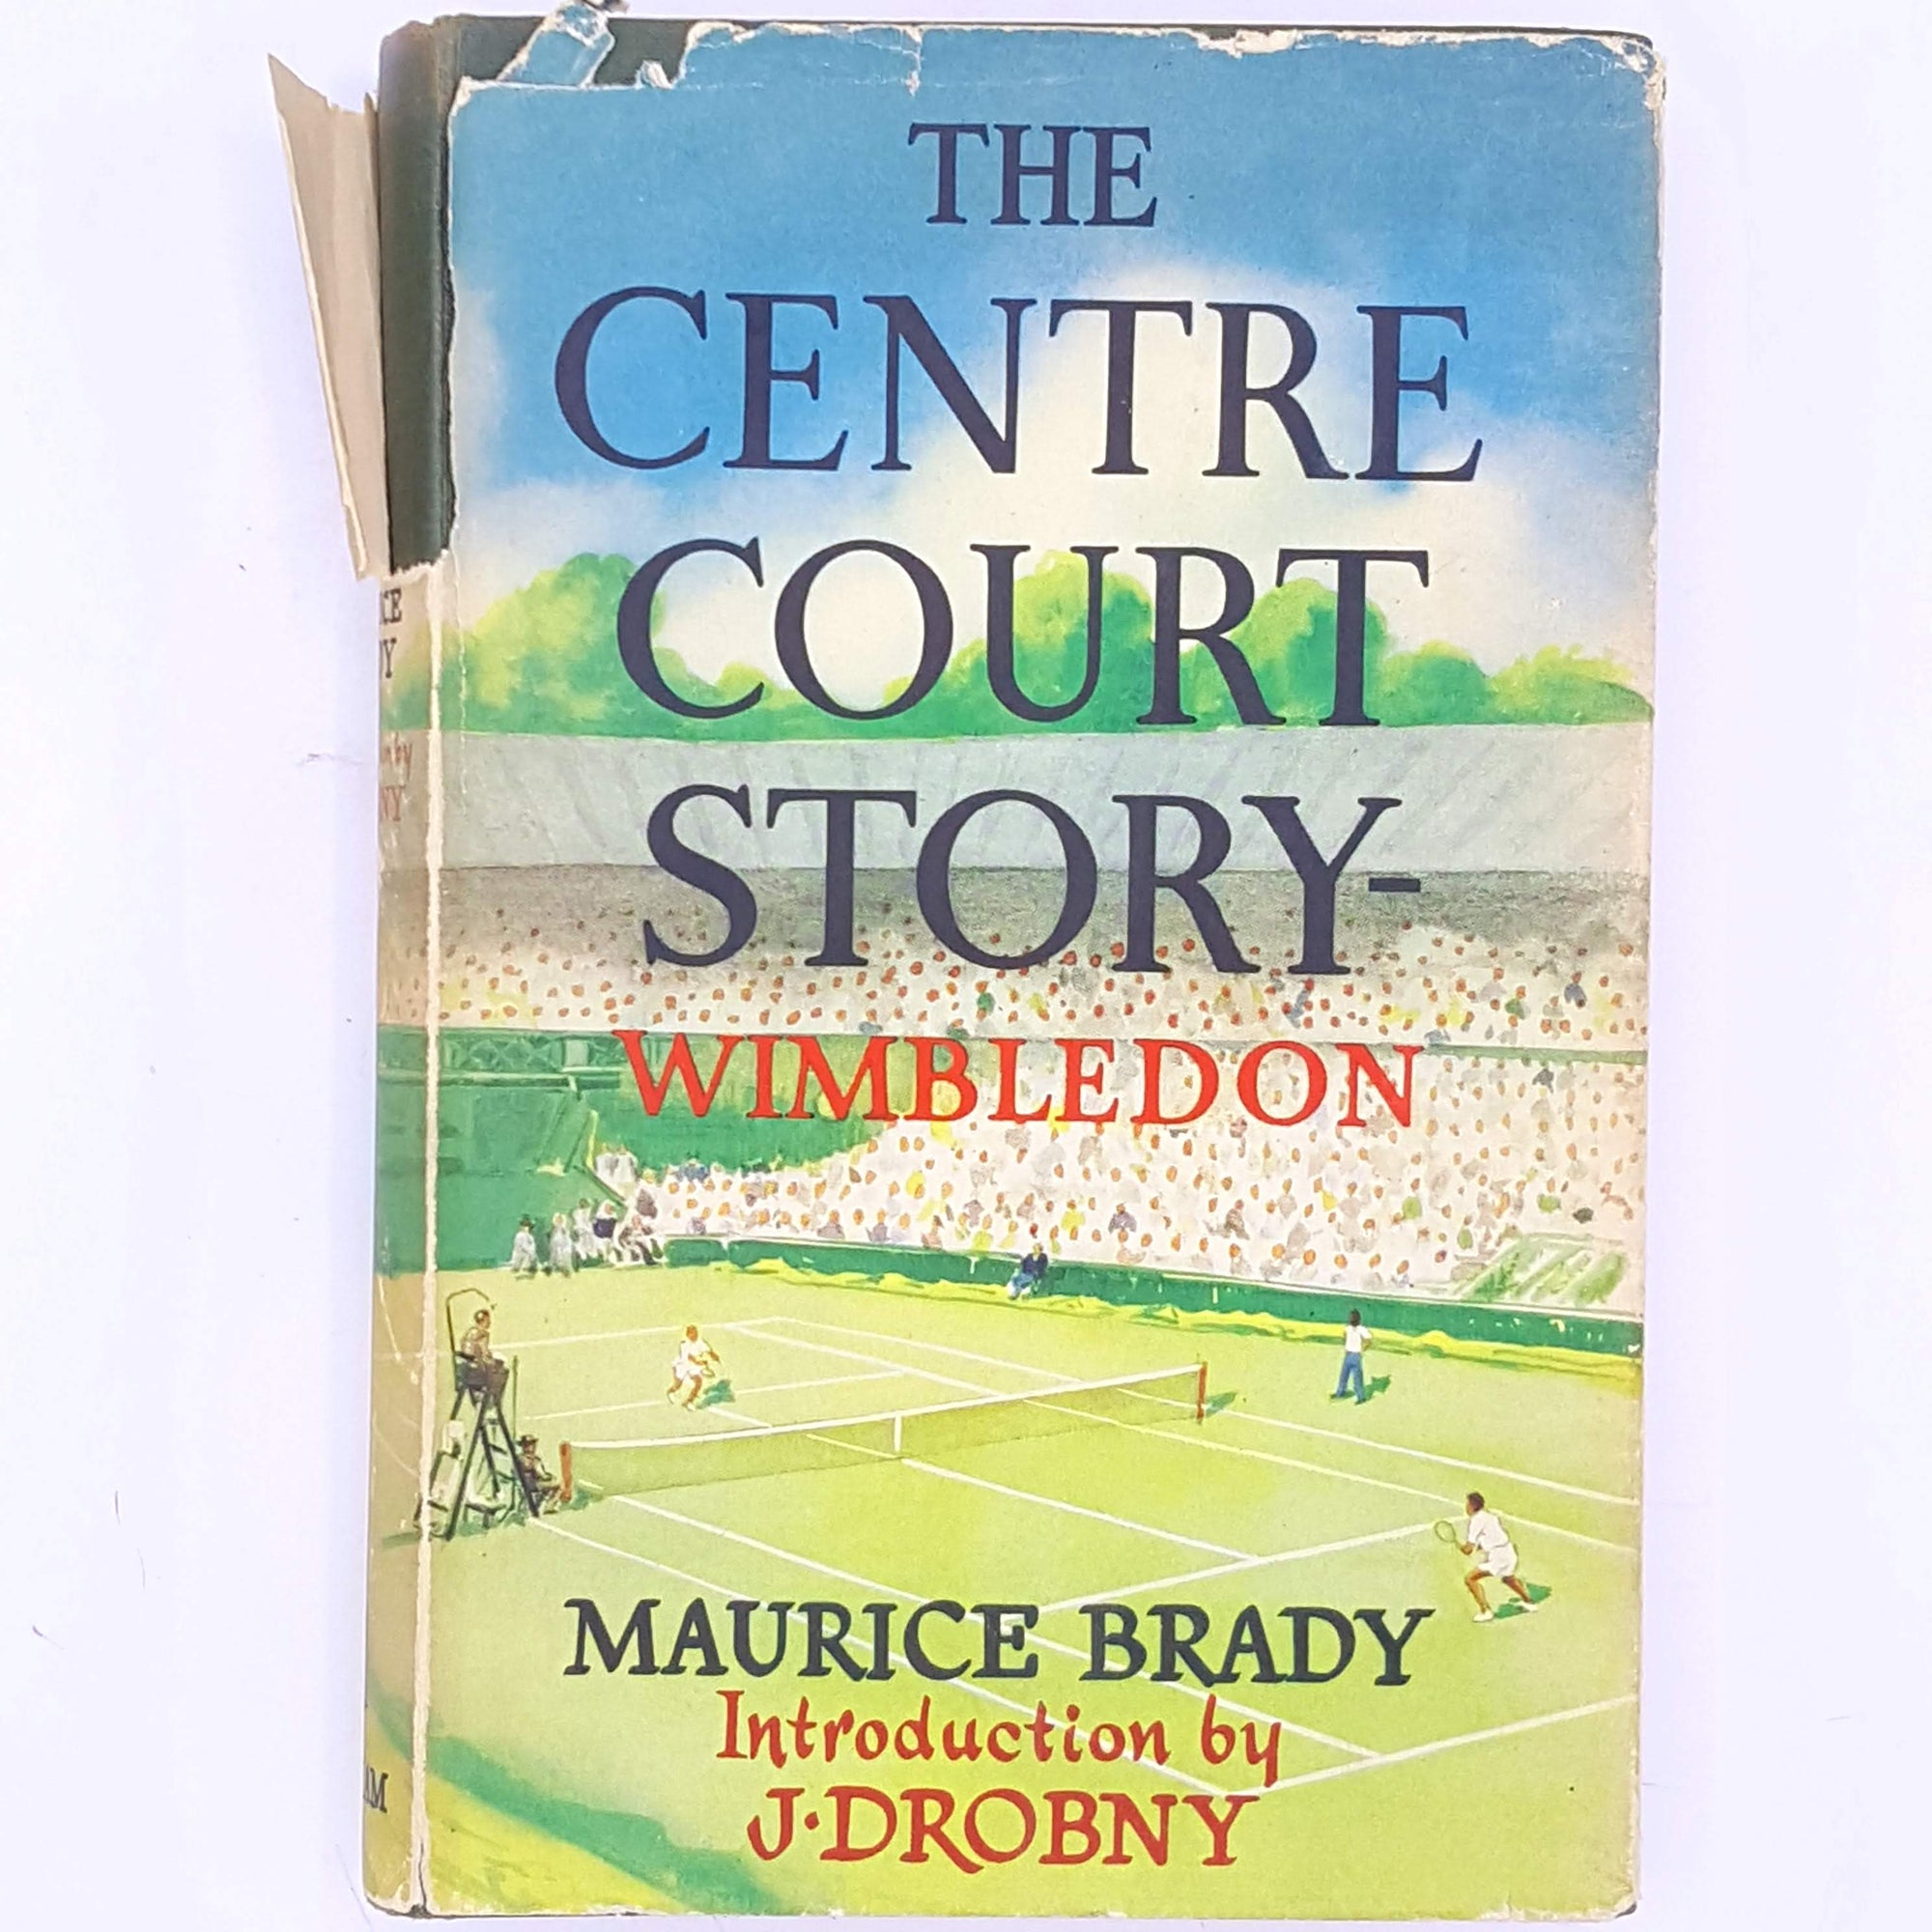 decorative-wimbledon-old-country-house-library-tennis-thrift-classic-summer-christmas-gifts-patterned-the-centre-court-story-antique-for-him-for-sports-fans-sport-vintage-books-